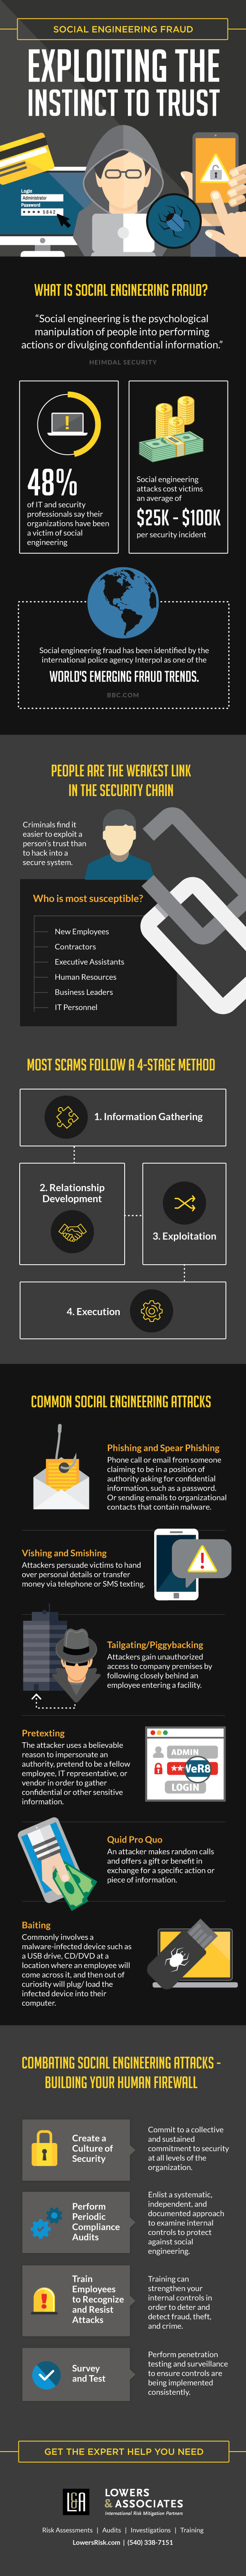 social-engineering-fraud-infographic